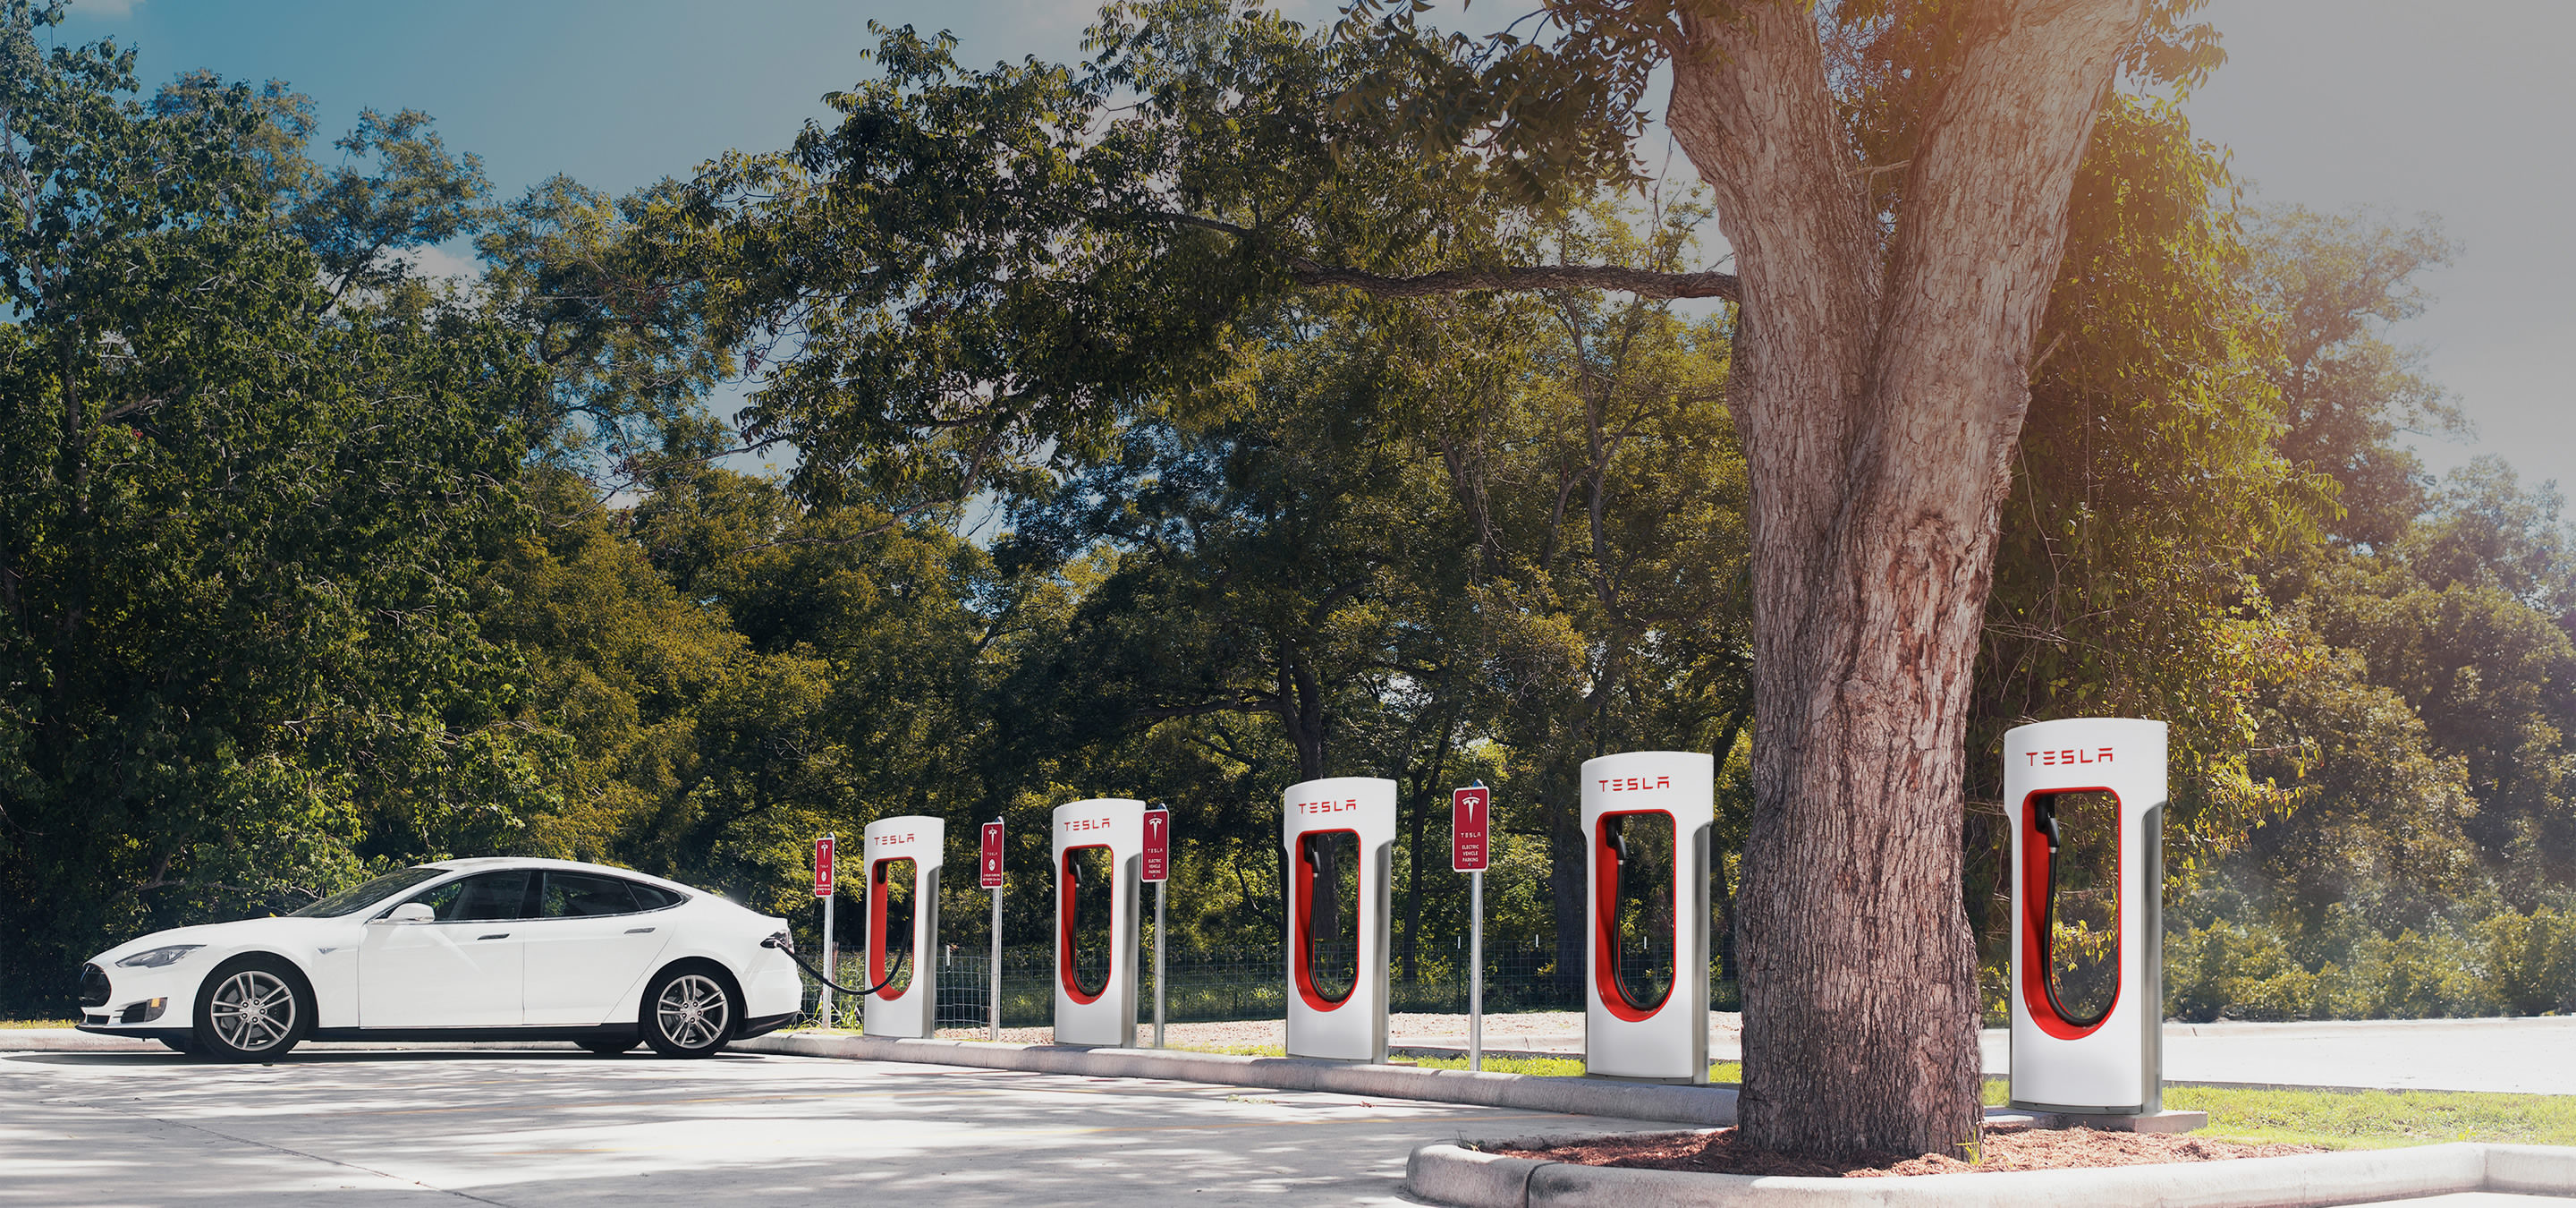 ... or like the Supercharger-solution: Free electricity for everyone who owns a Tesla. - Quelle: teslamotors.com, 2016